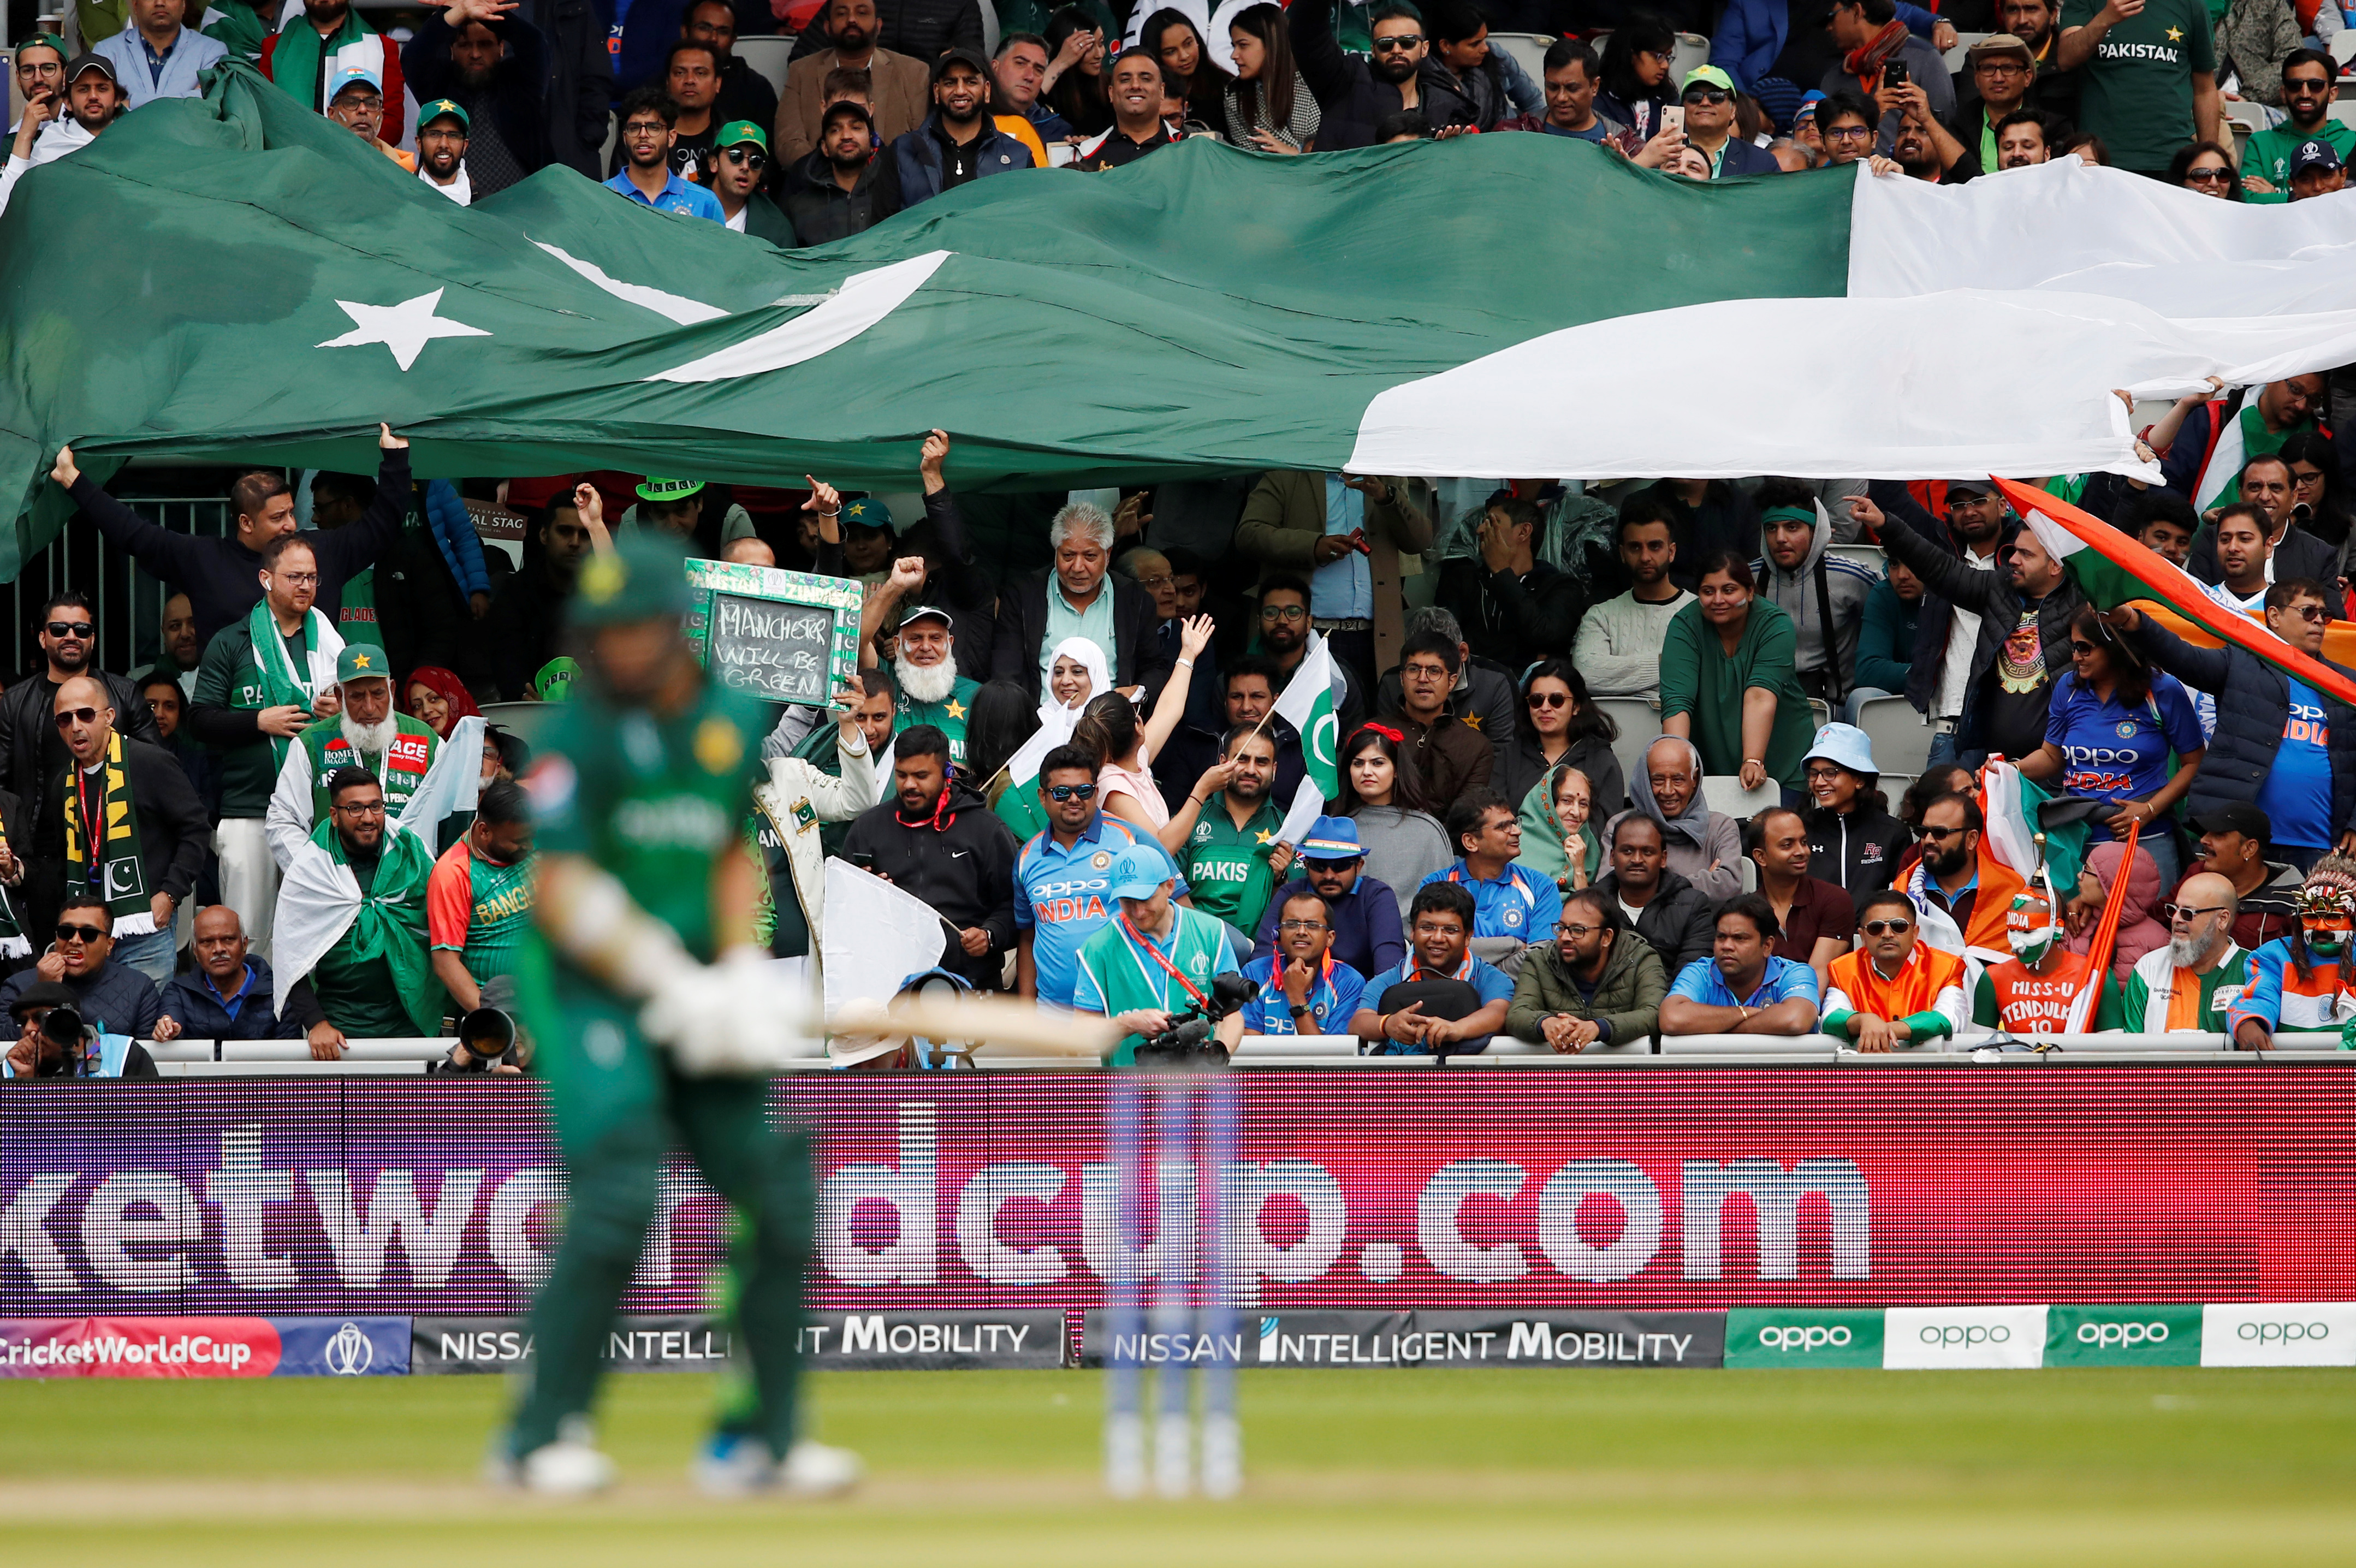 Cricket: Pakistan fans turn to humour to get over World Cup humbling by India